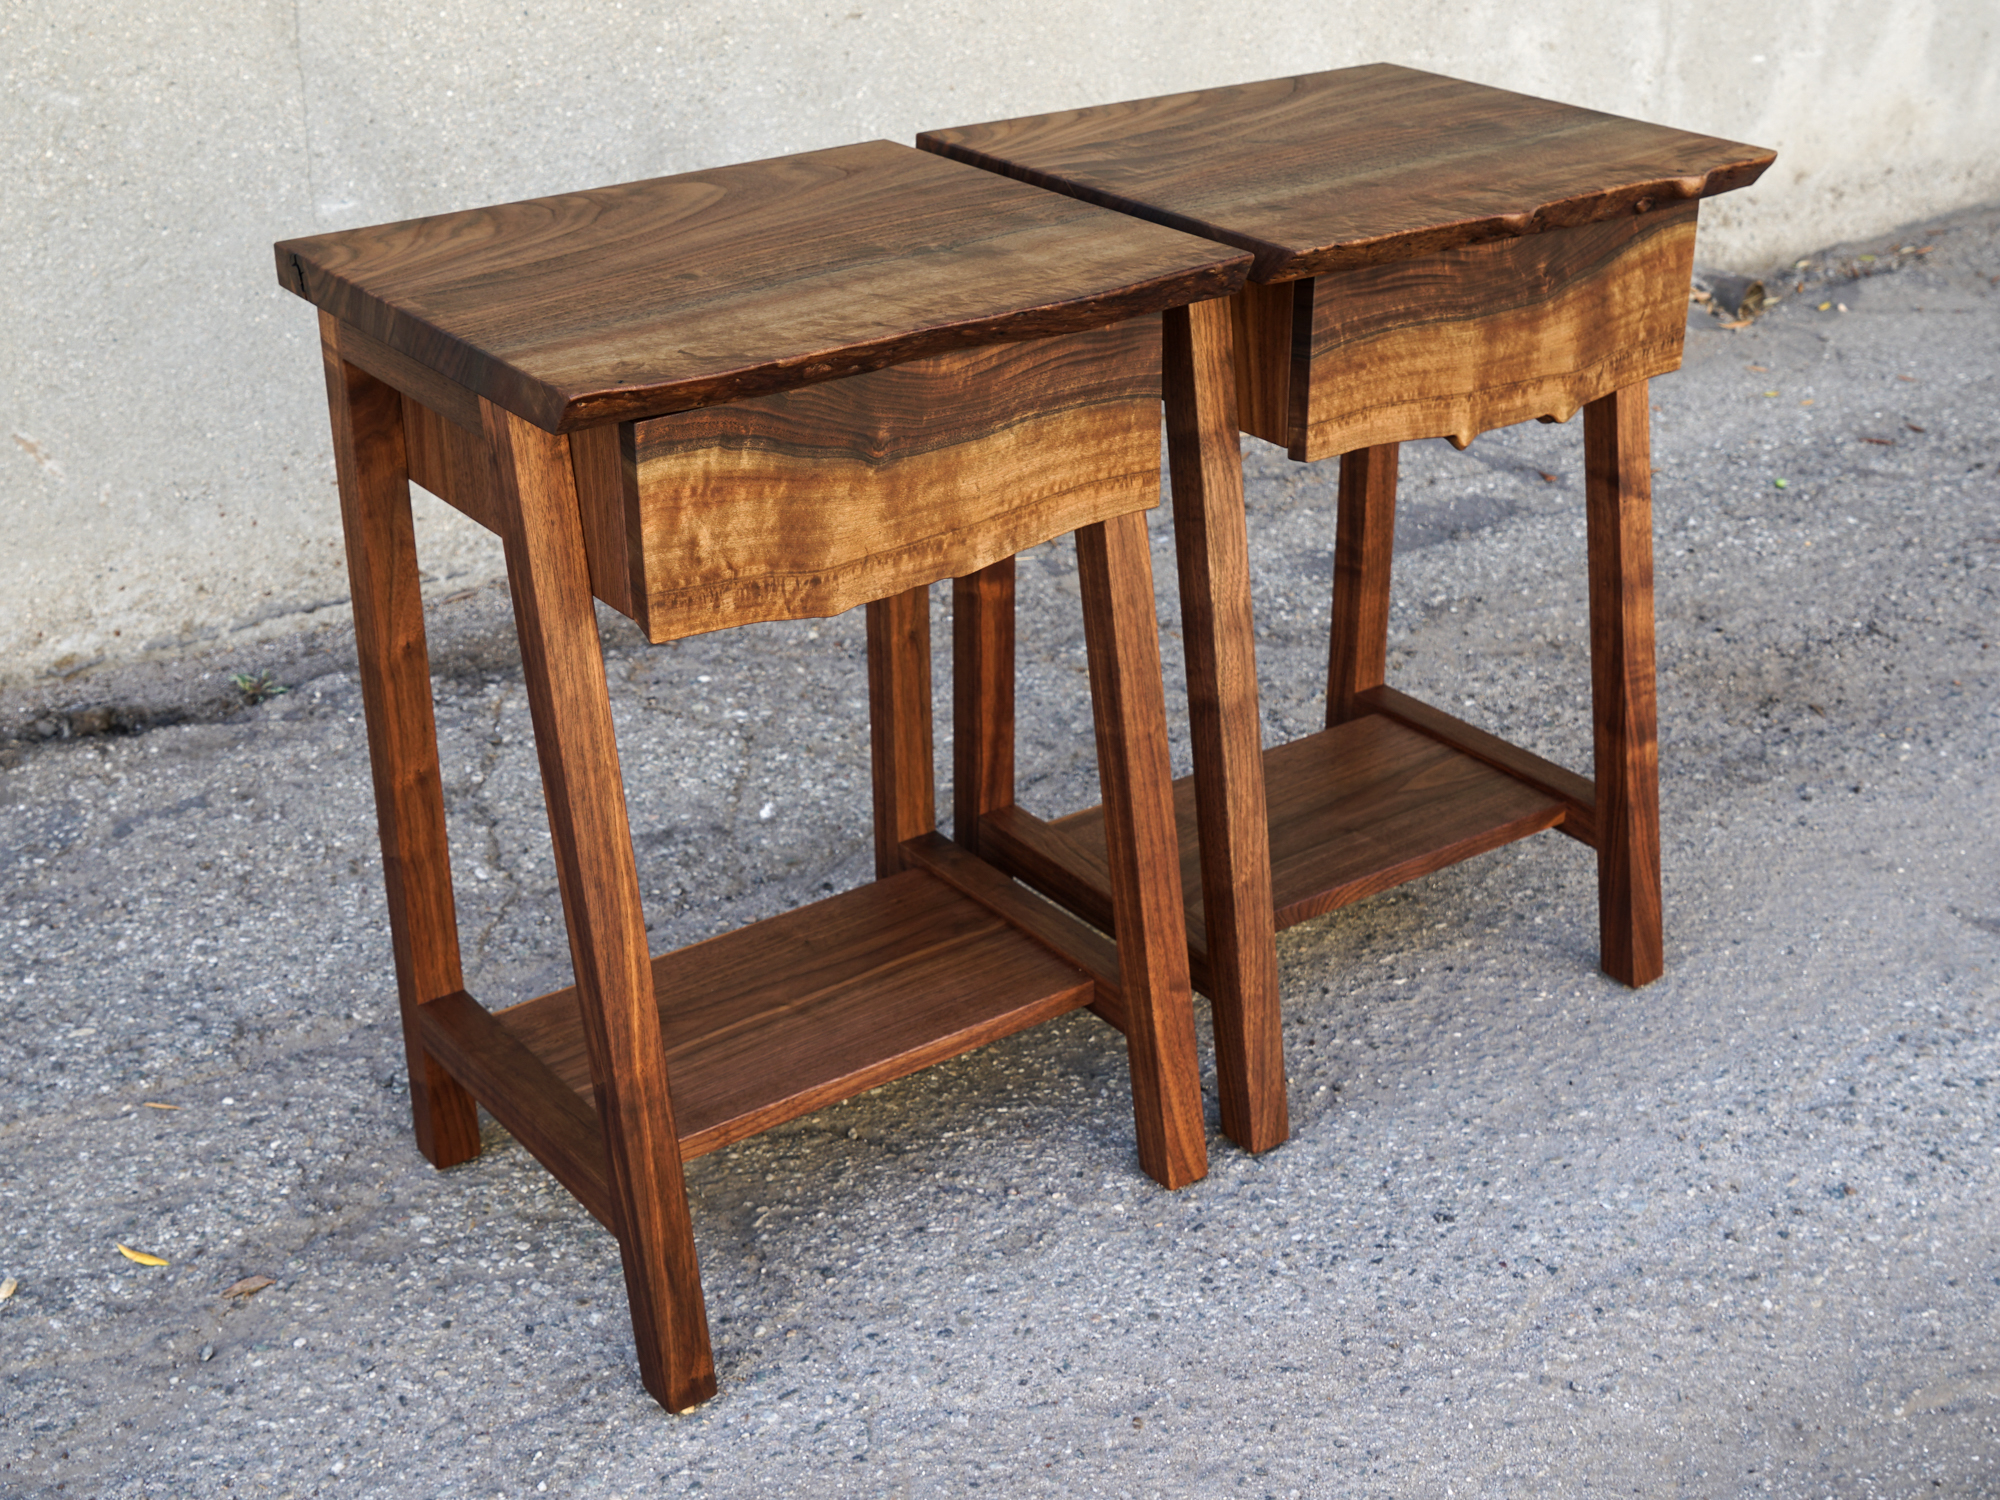 bedside tables-03834.jpg